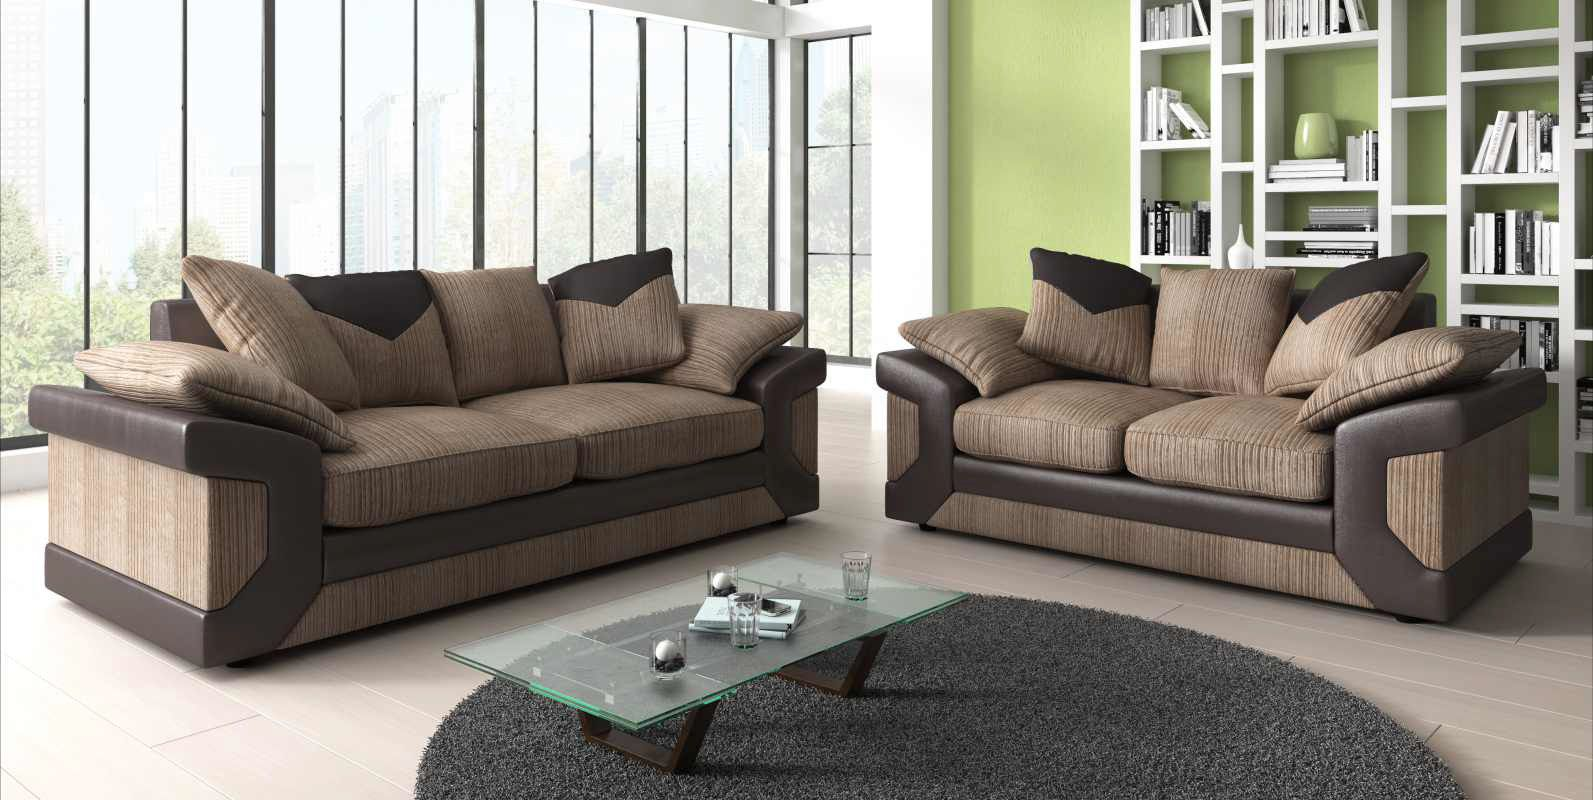 Look At Them Two D Elegant And Stylish Dino 3 2 Sofa Seater Set Available In Two Colour Combinations Grey With Black And Brown Furniture Sofa Sofa Set